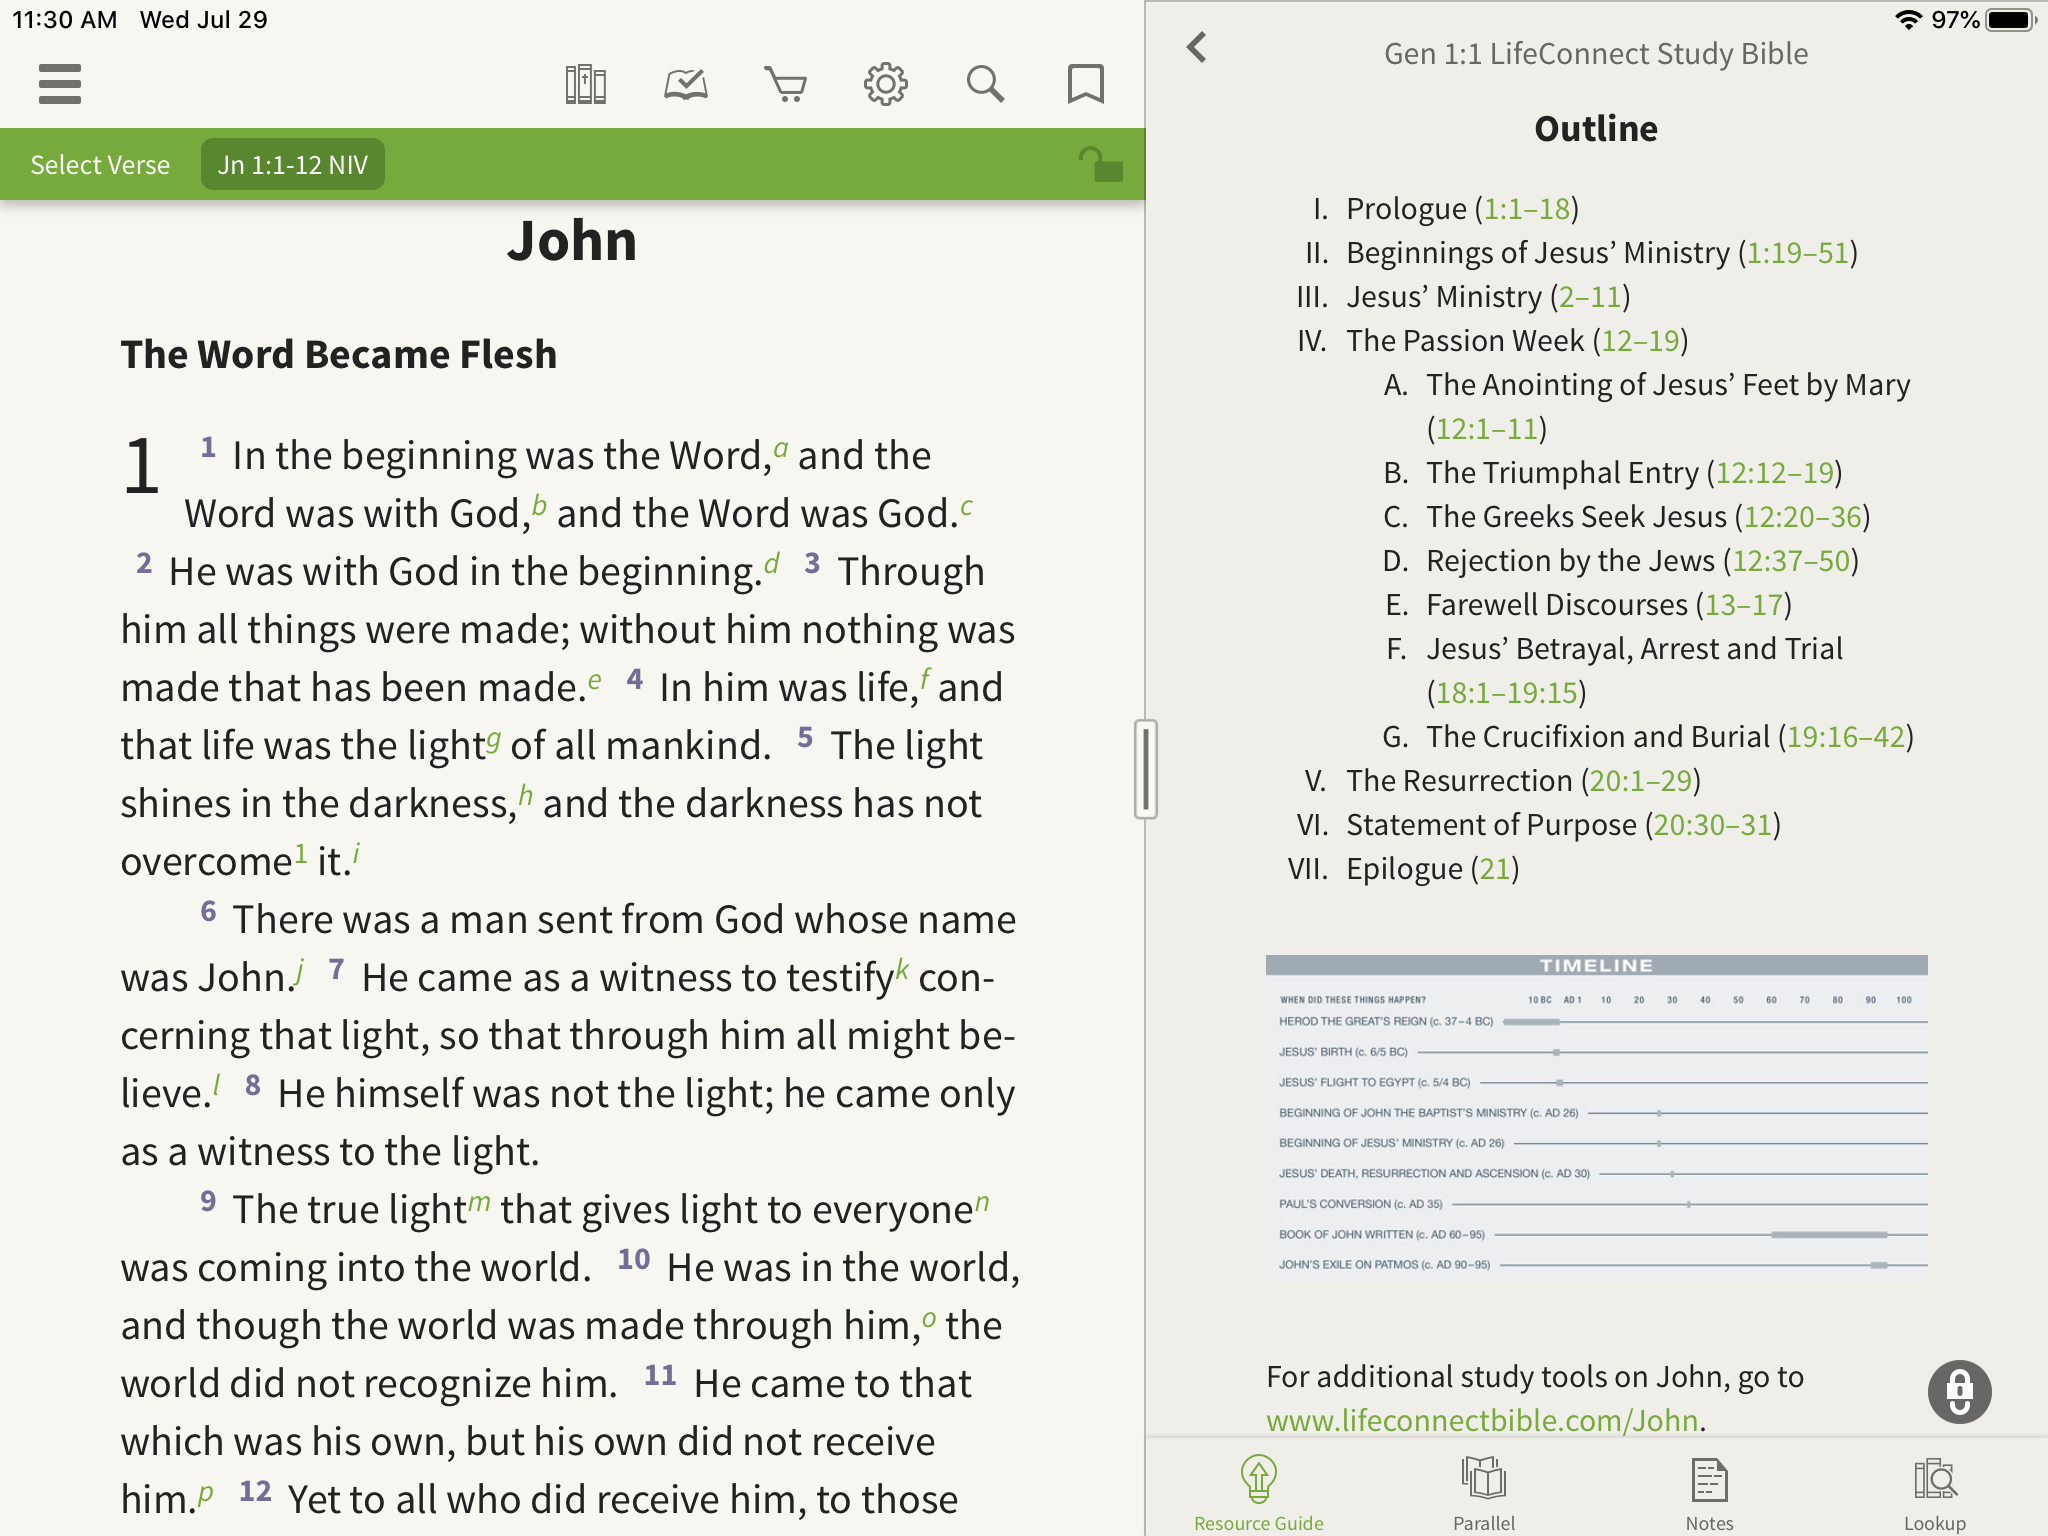 outlines in the olive tree bible app